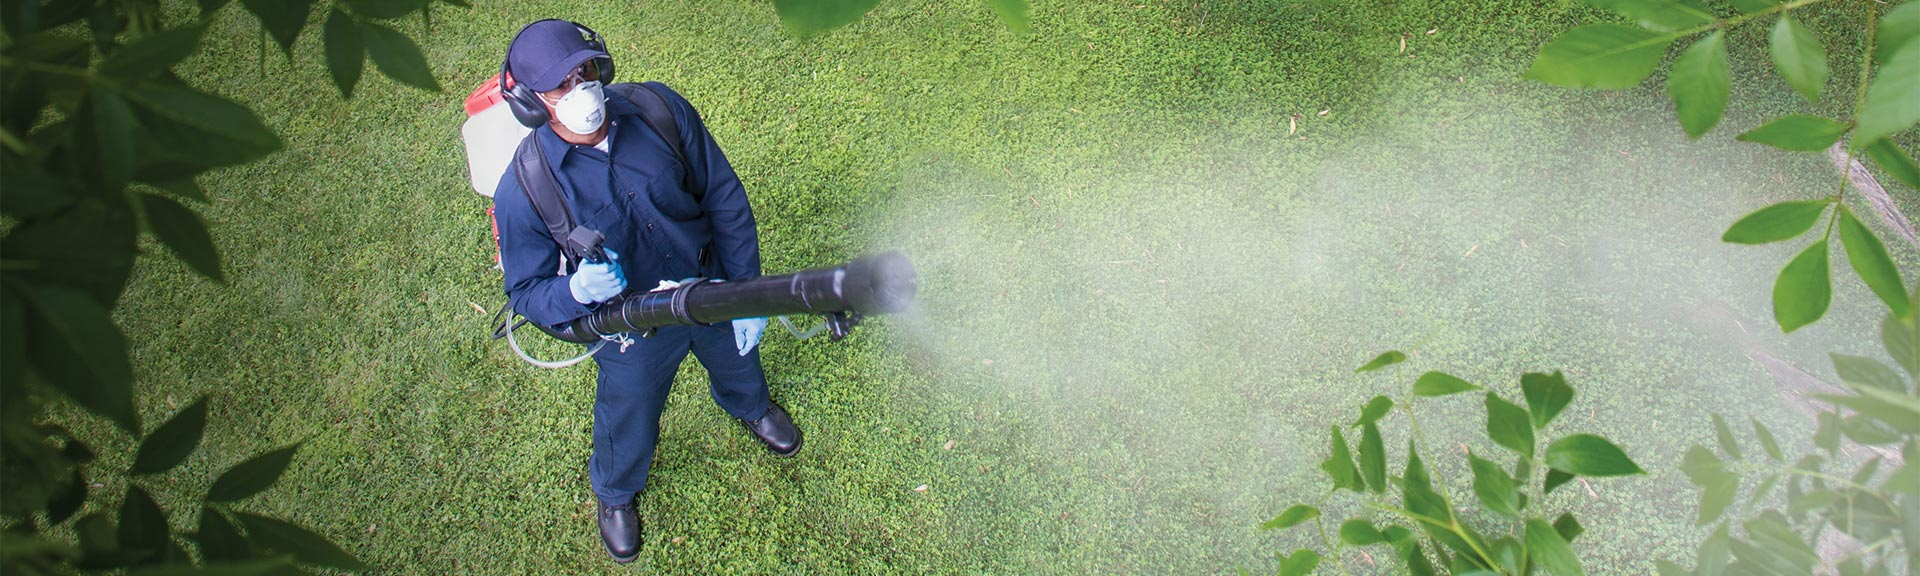 Fendona™ CS Controlled Release Insecticide | BASF Pest